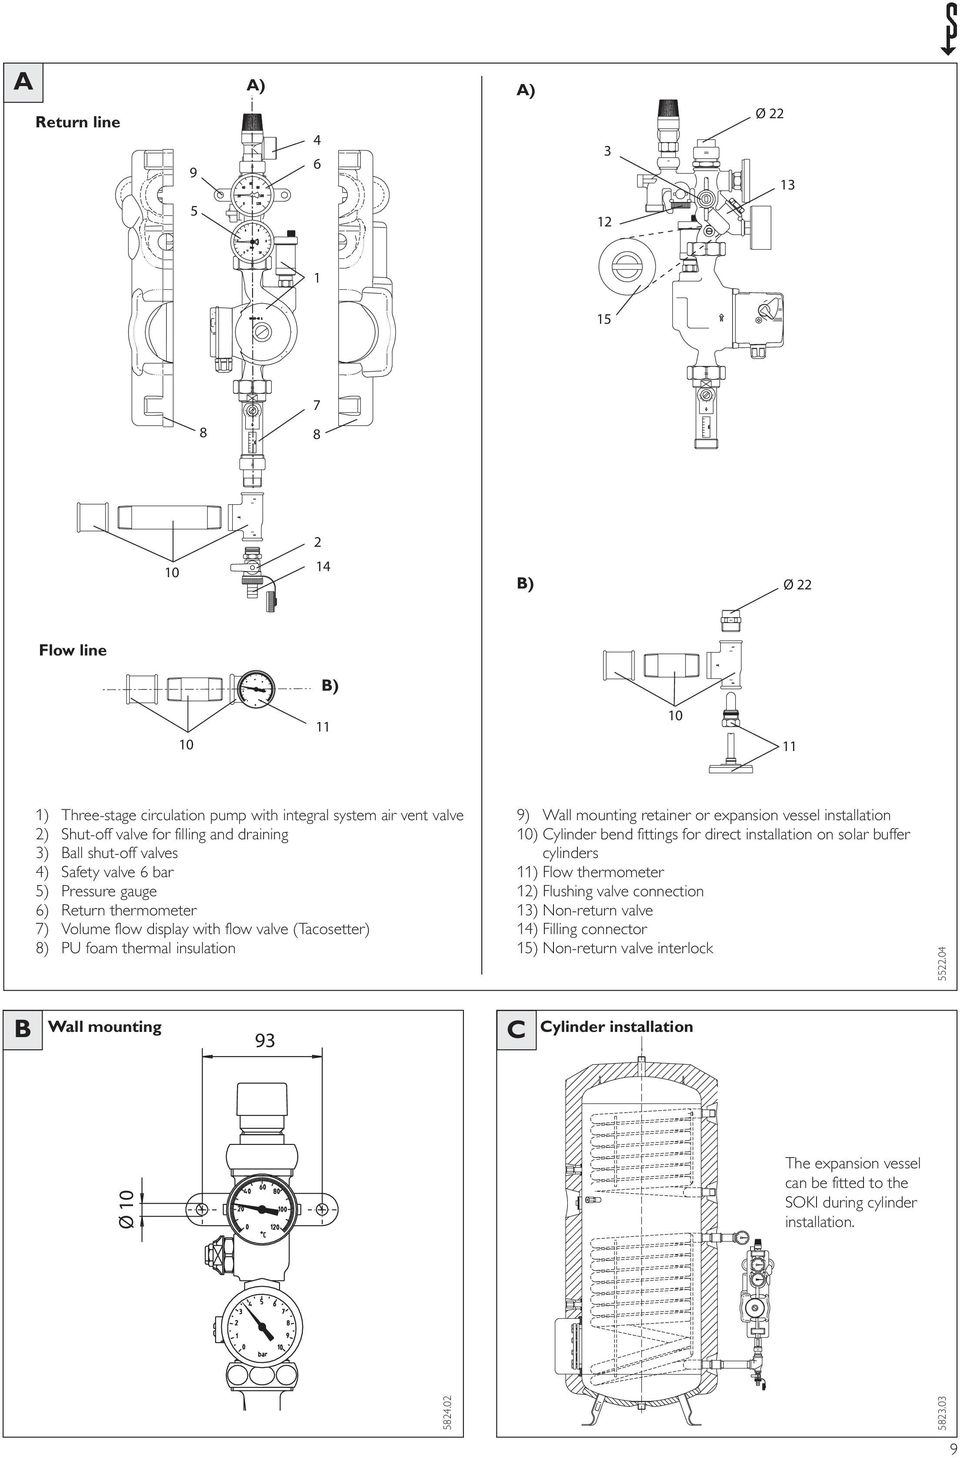 vessel installation 10) Cylinder bend fittings for direct installation on solar buffer cylinders 11) Flow thermometer 12) Flushing valve connection 13) Non-return valve 14)